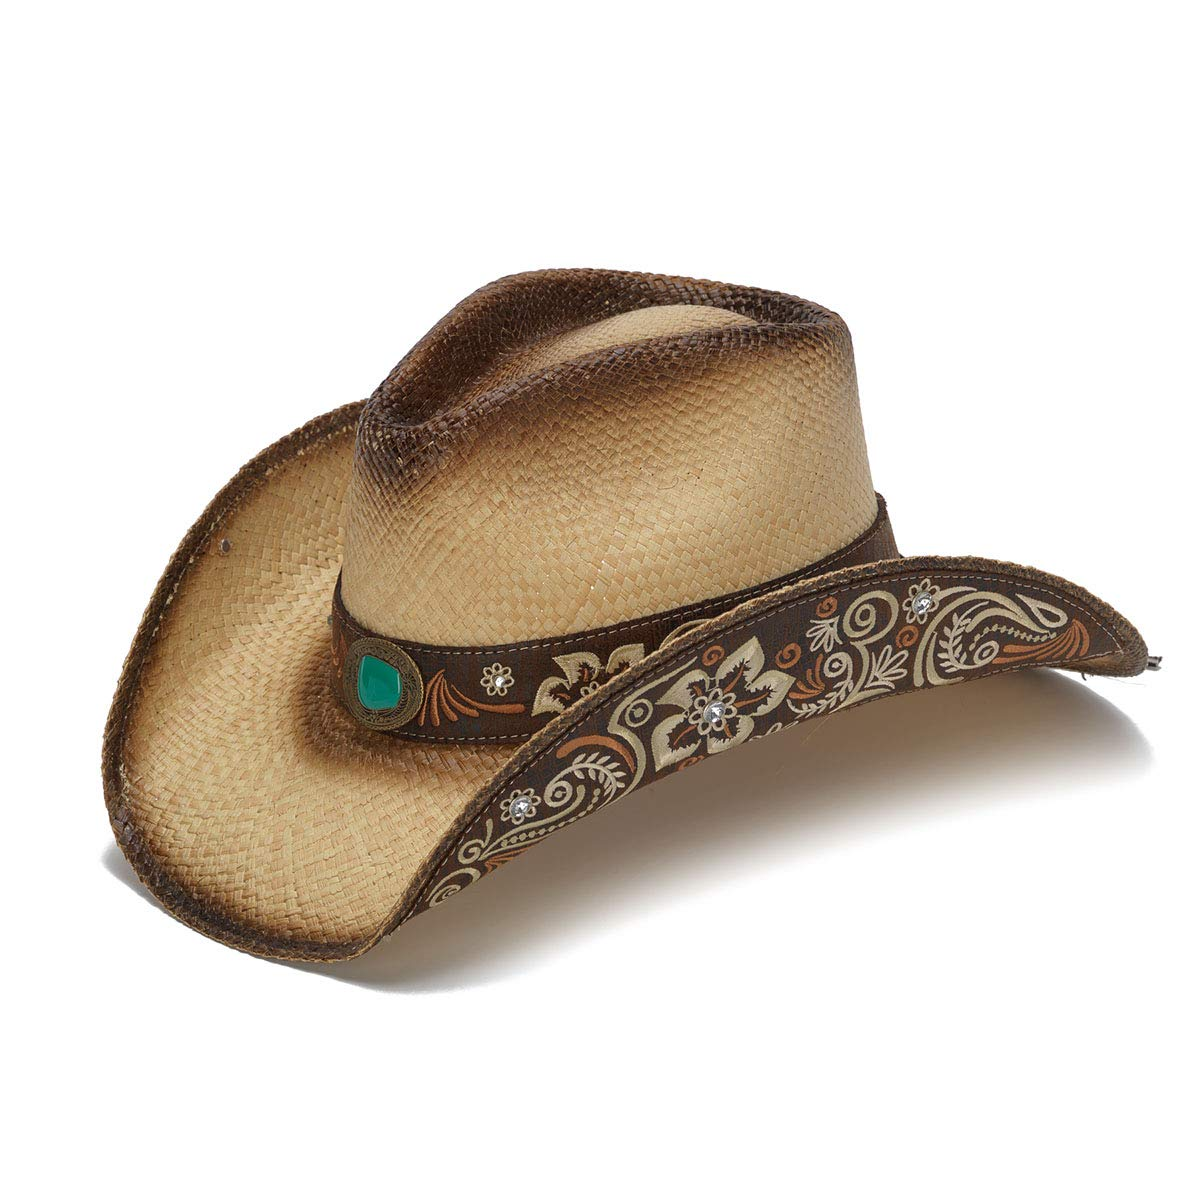 Stampede Hats Women's Sky Action Floral Embroidered Western Hat M Tea Stain by Stampede Hats